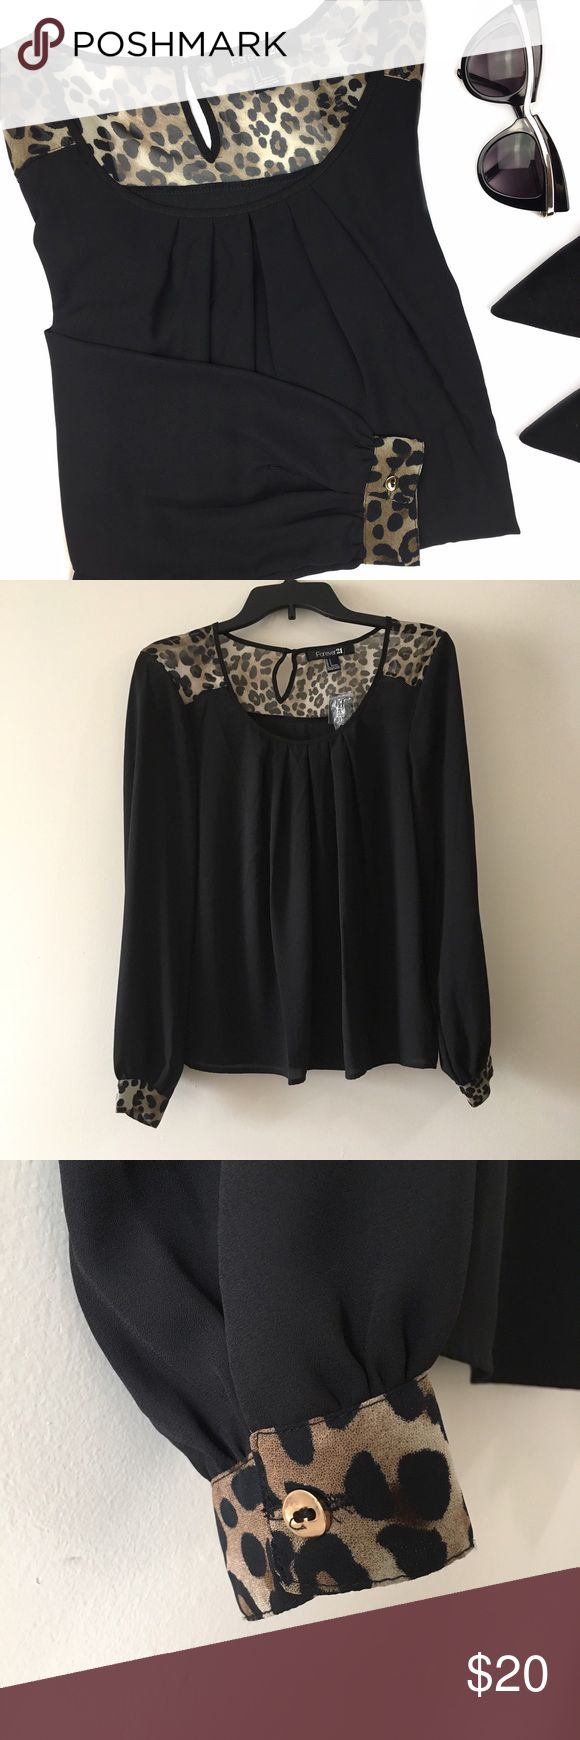 NWT Forever 21 Black Leopard Print Long Sleeve Top NWT. Super elegant blouse with scoop neck and pleated details on front, animal print panels around neck and cuffs. Buttoned cuffs and keyhole closure on the back. 100% polyester. Forever 21 Tops Blouses